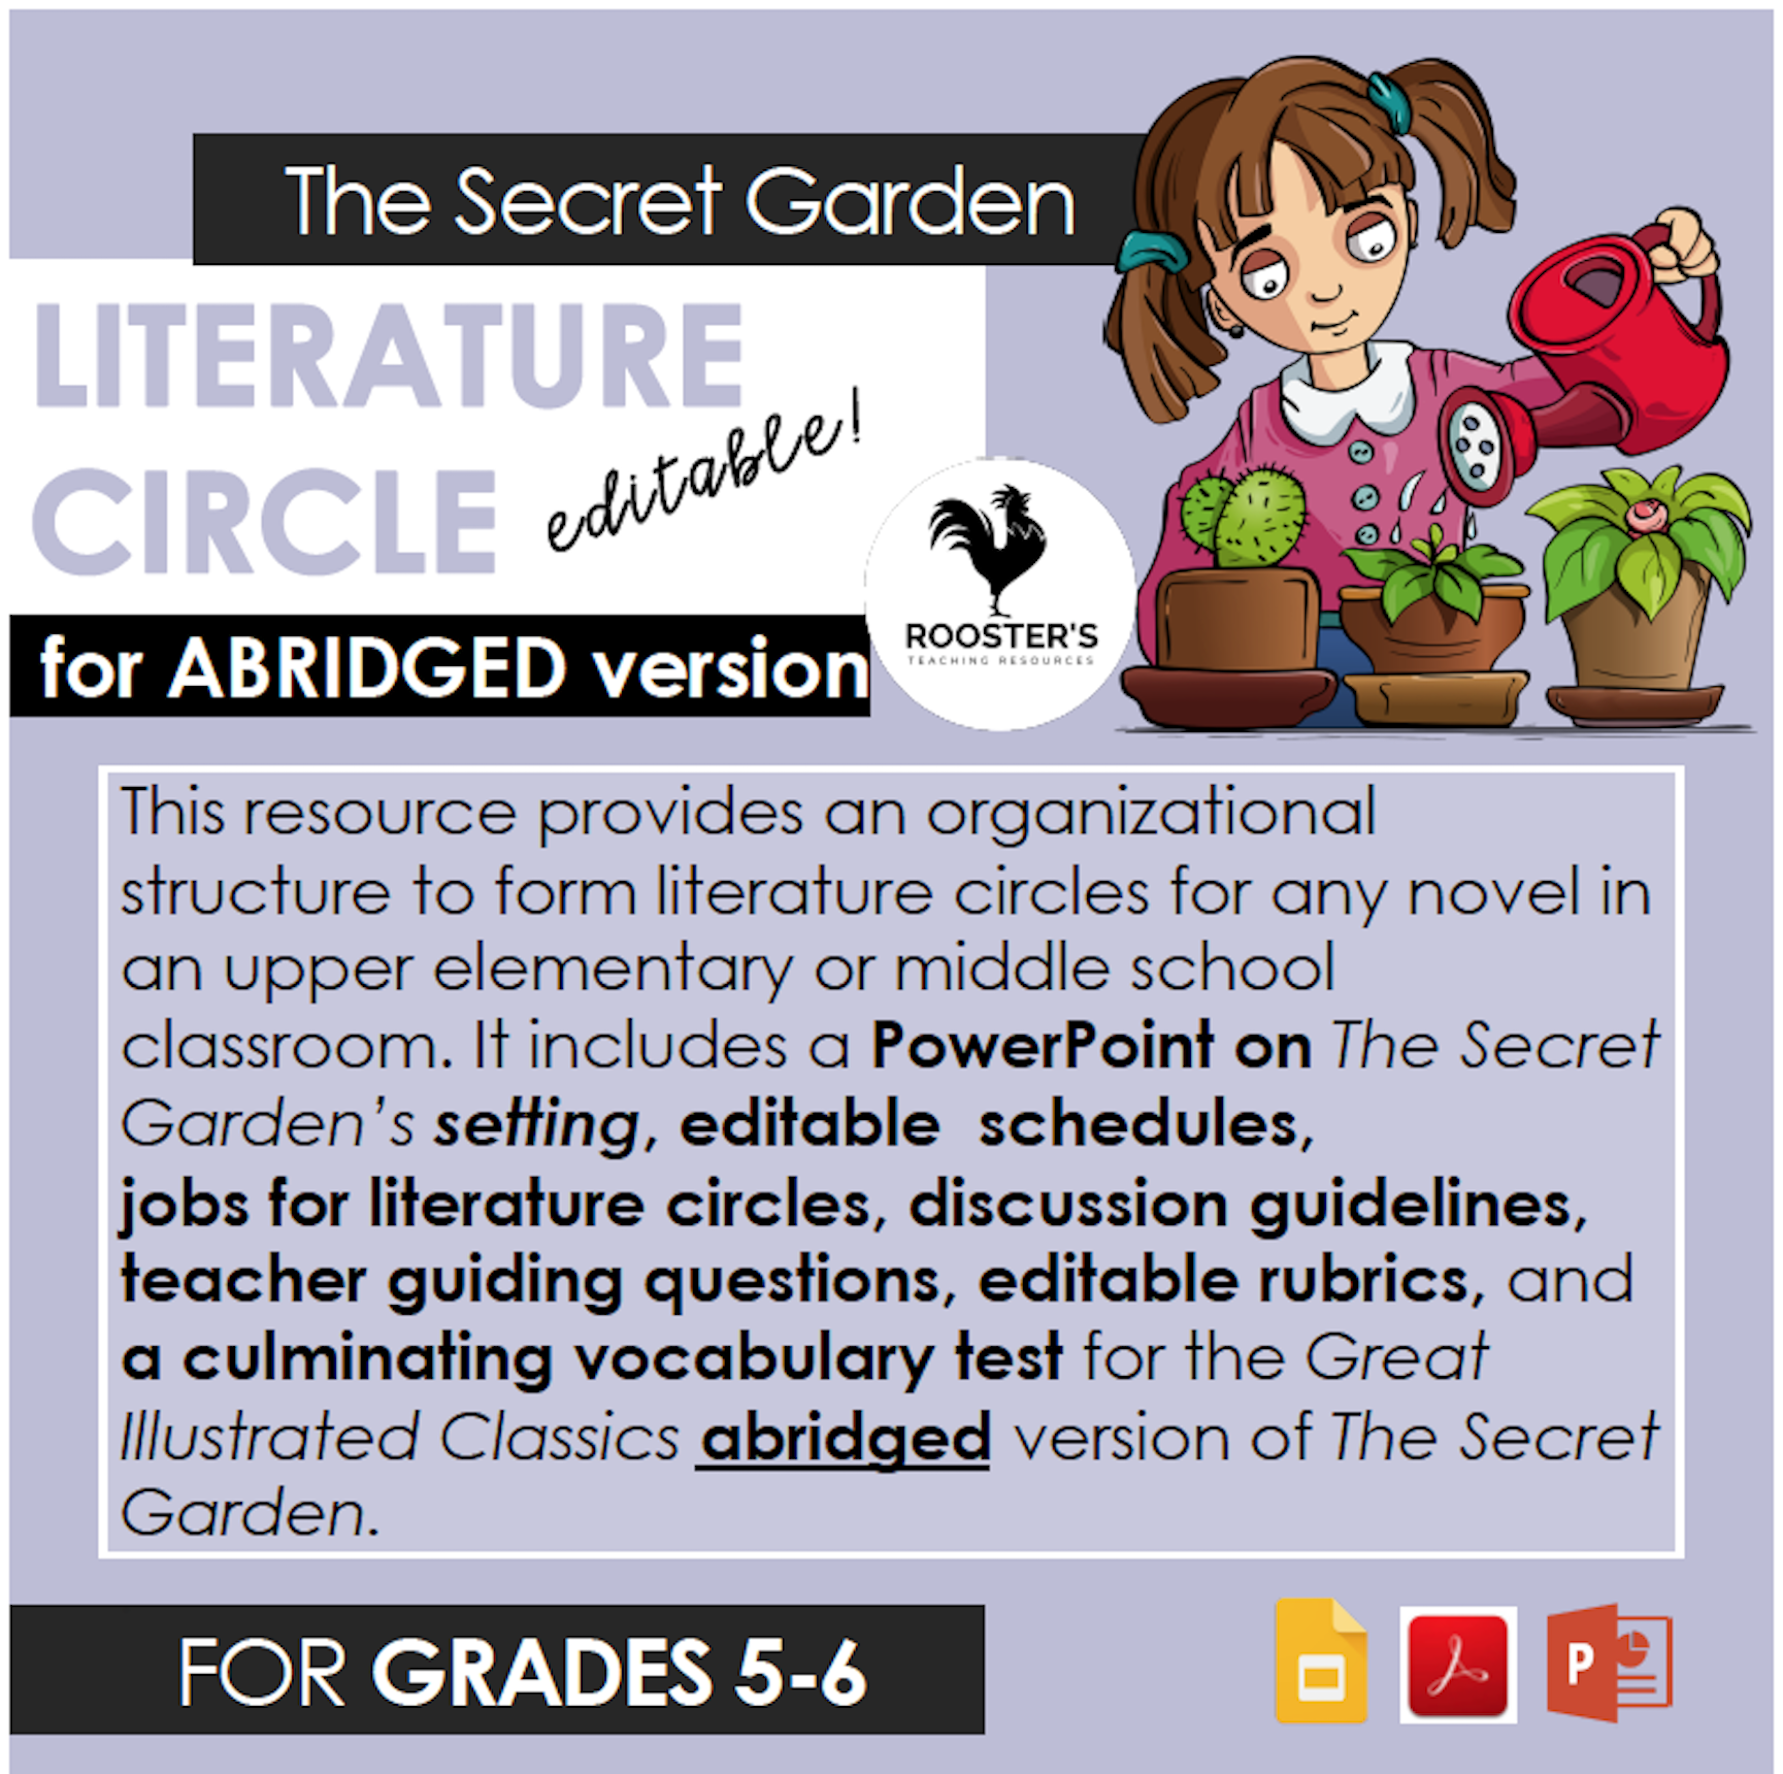 literature circle the secret garden abridged